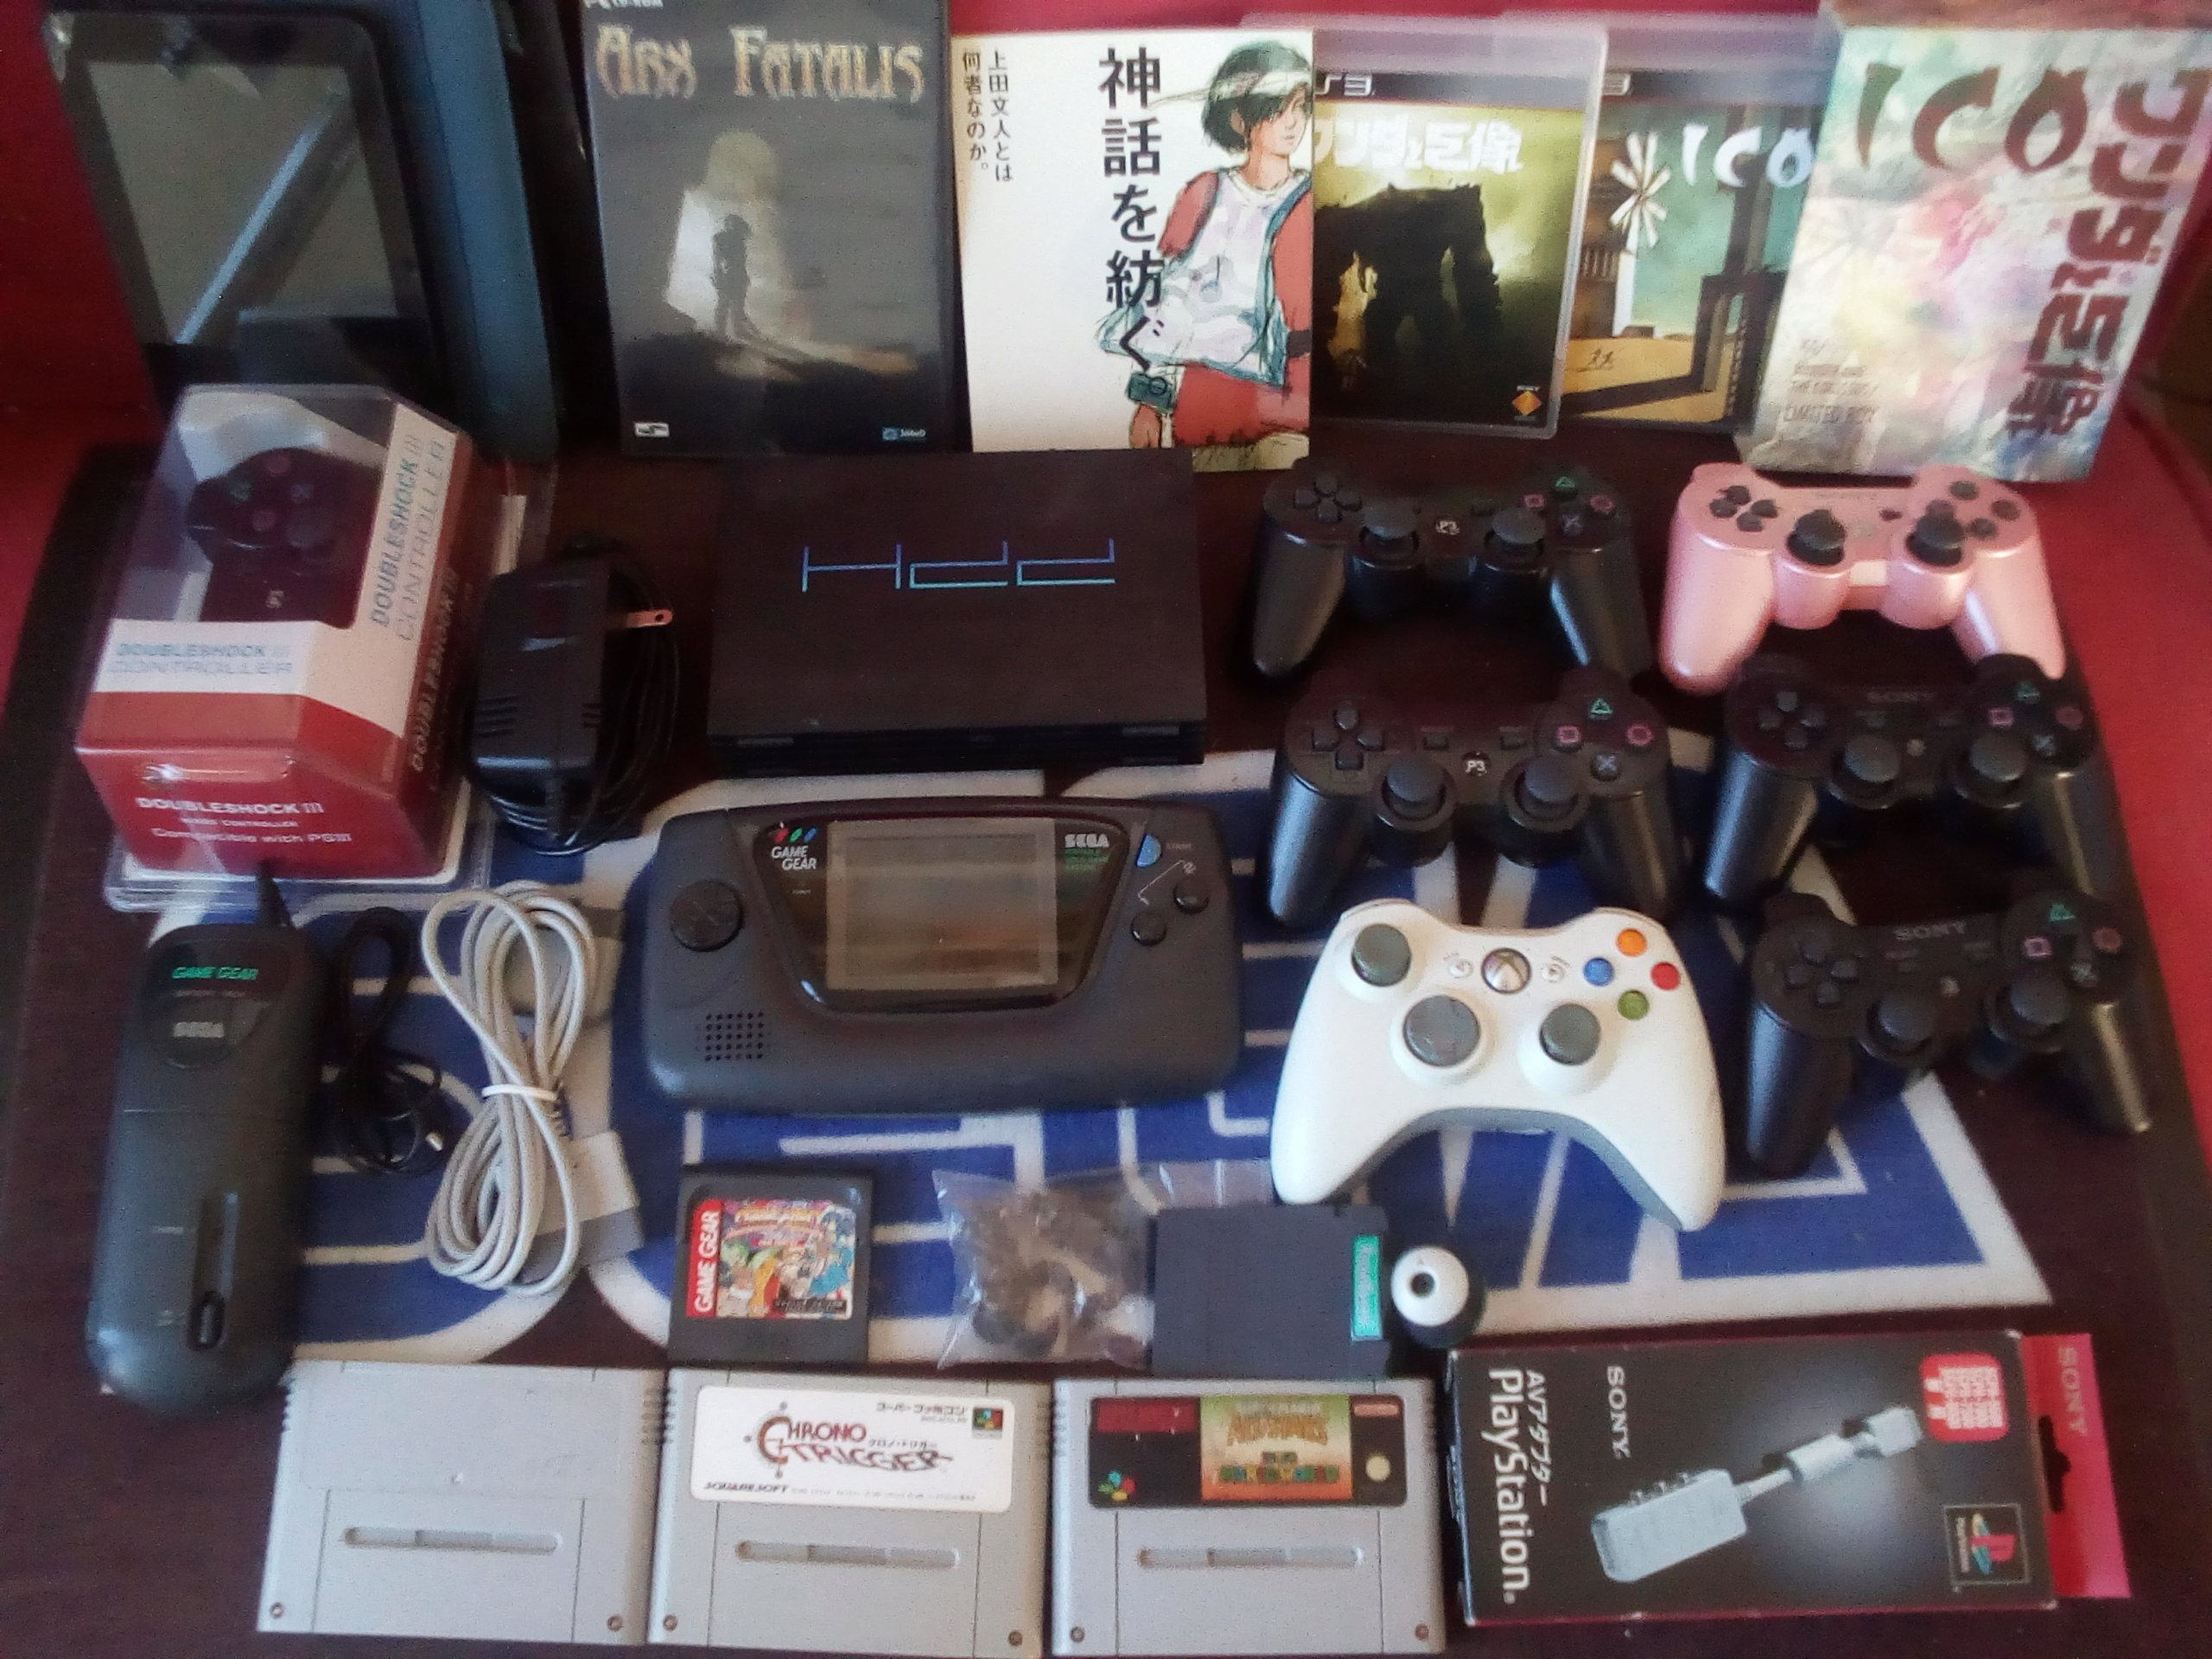 [VDS] Trucs jap, PSP, GG, PS3, SFC, Mark III, NEC, Goodies Sega jap etc Lot_ic10